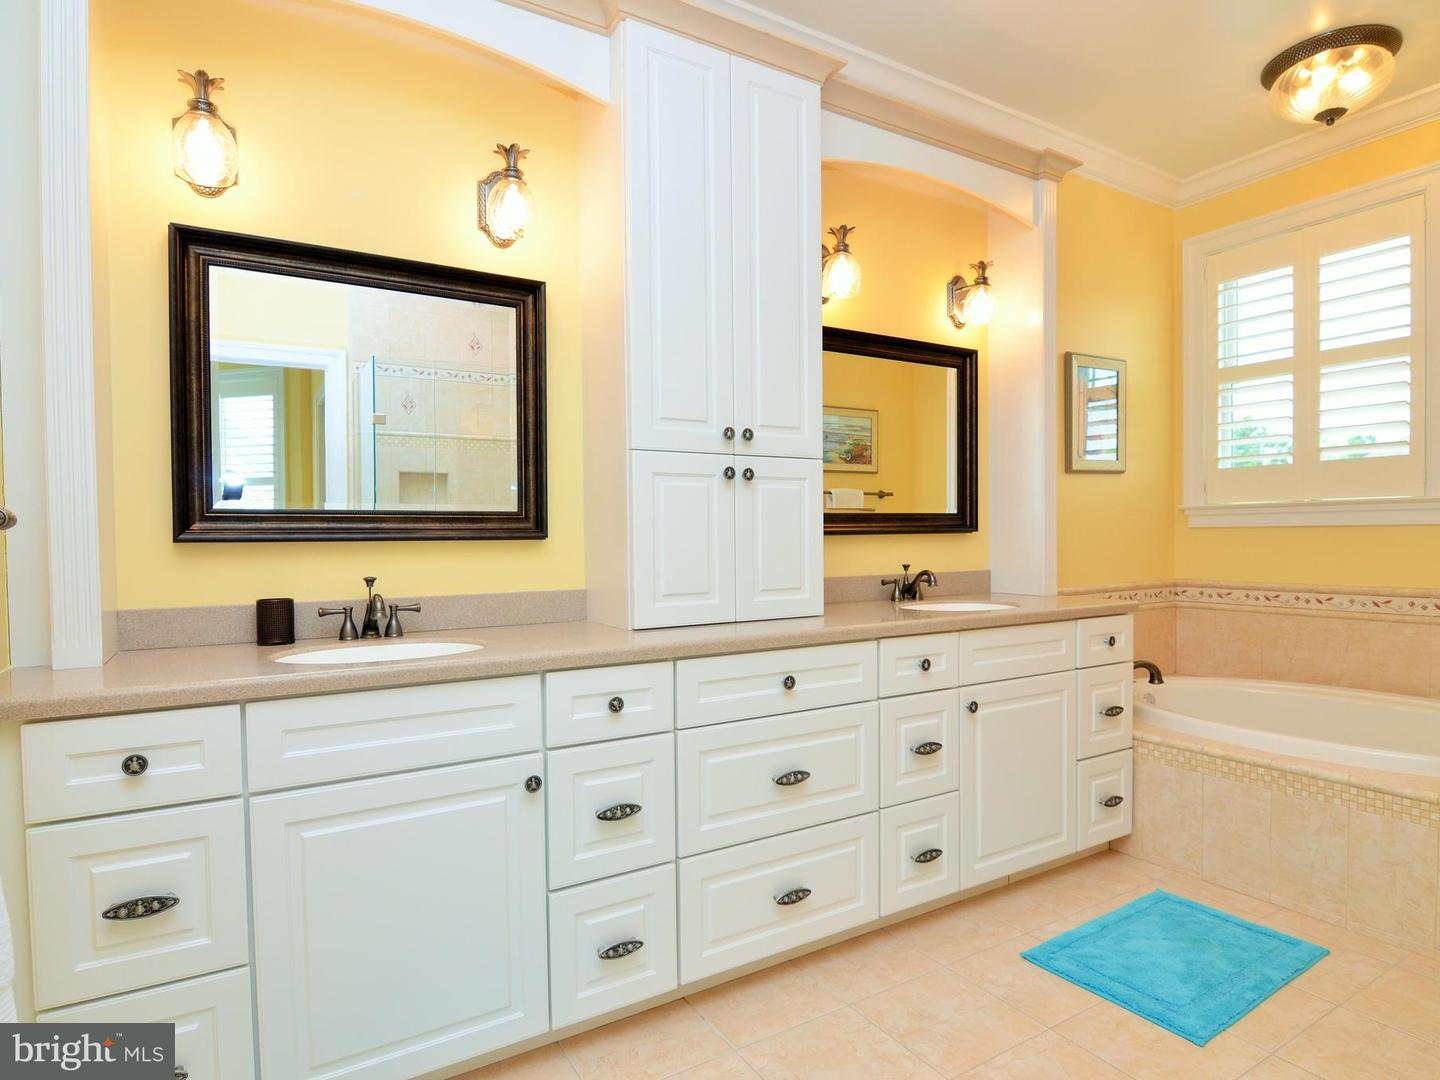 1002293530-300500807559-2018-09-25-15-08-25 31 Hall Ave | Rehoboth Beach, DE Real Estate For Sale | MLS# 1002293530  - 1st Choice Properties